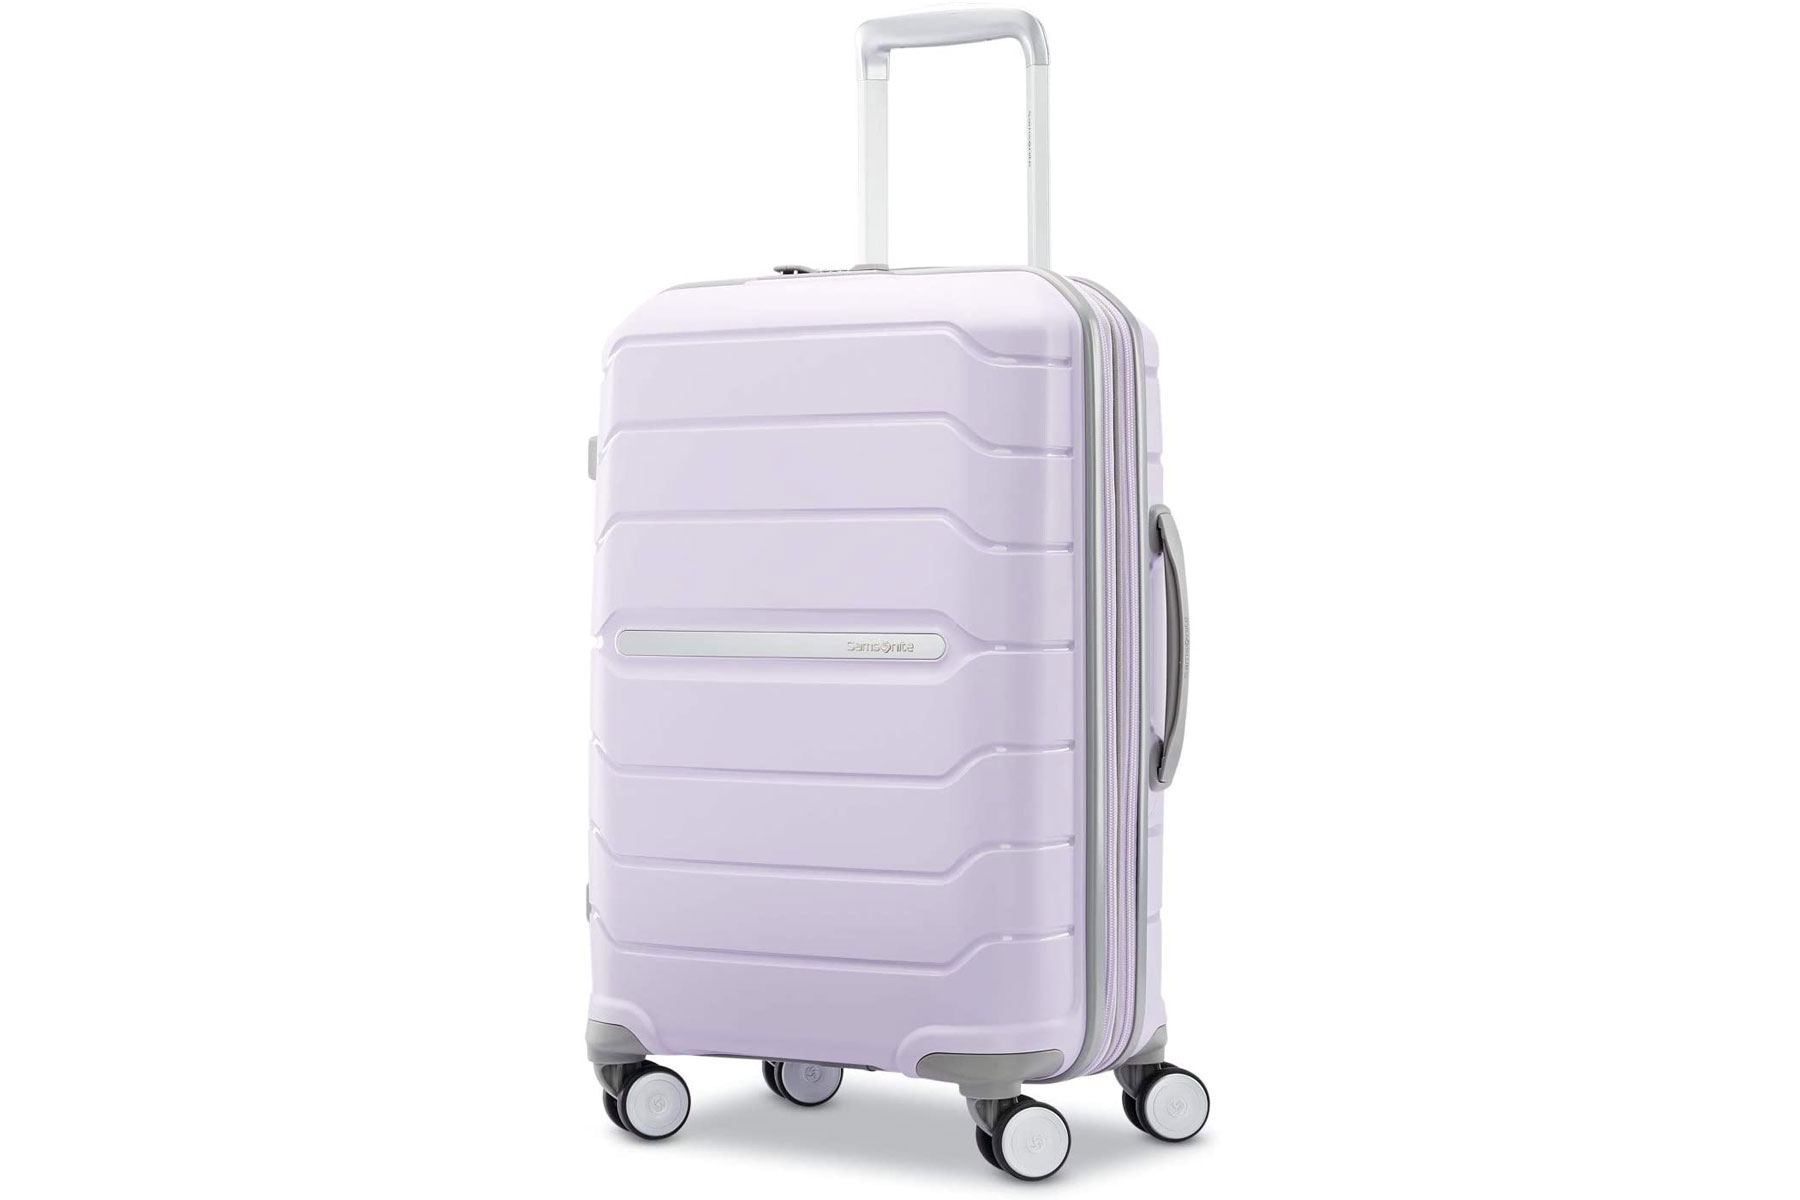 Samsonite Freeform Hardside Spinner